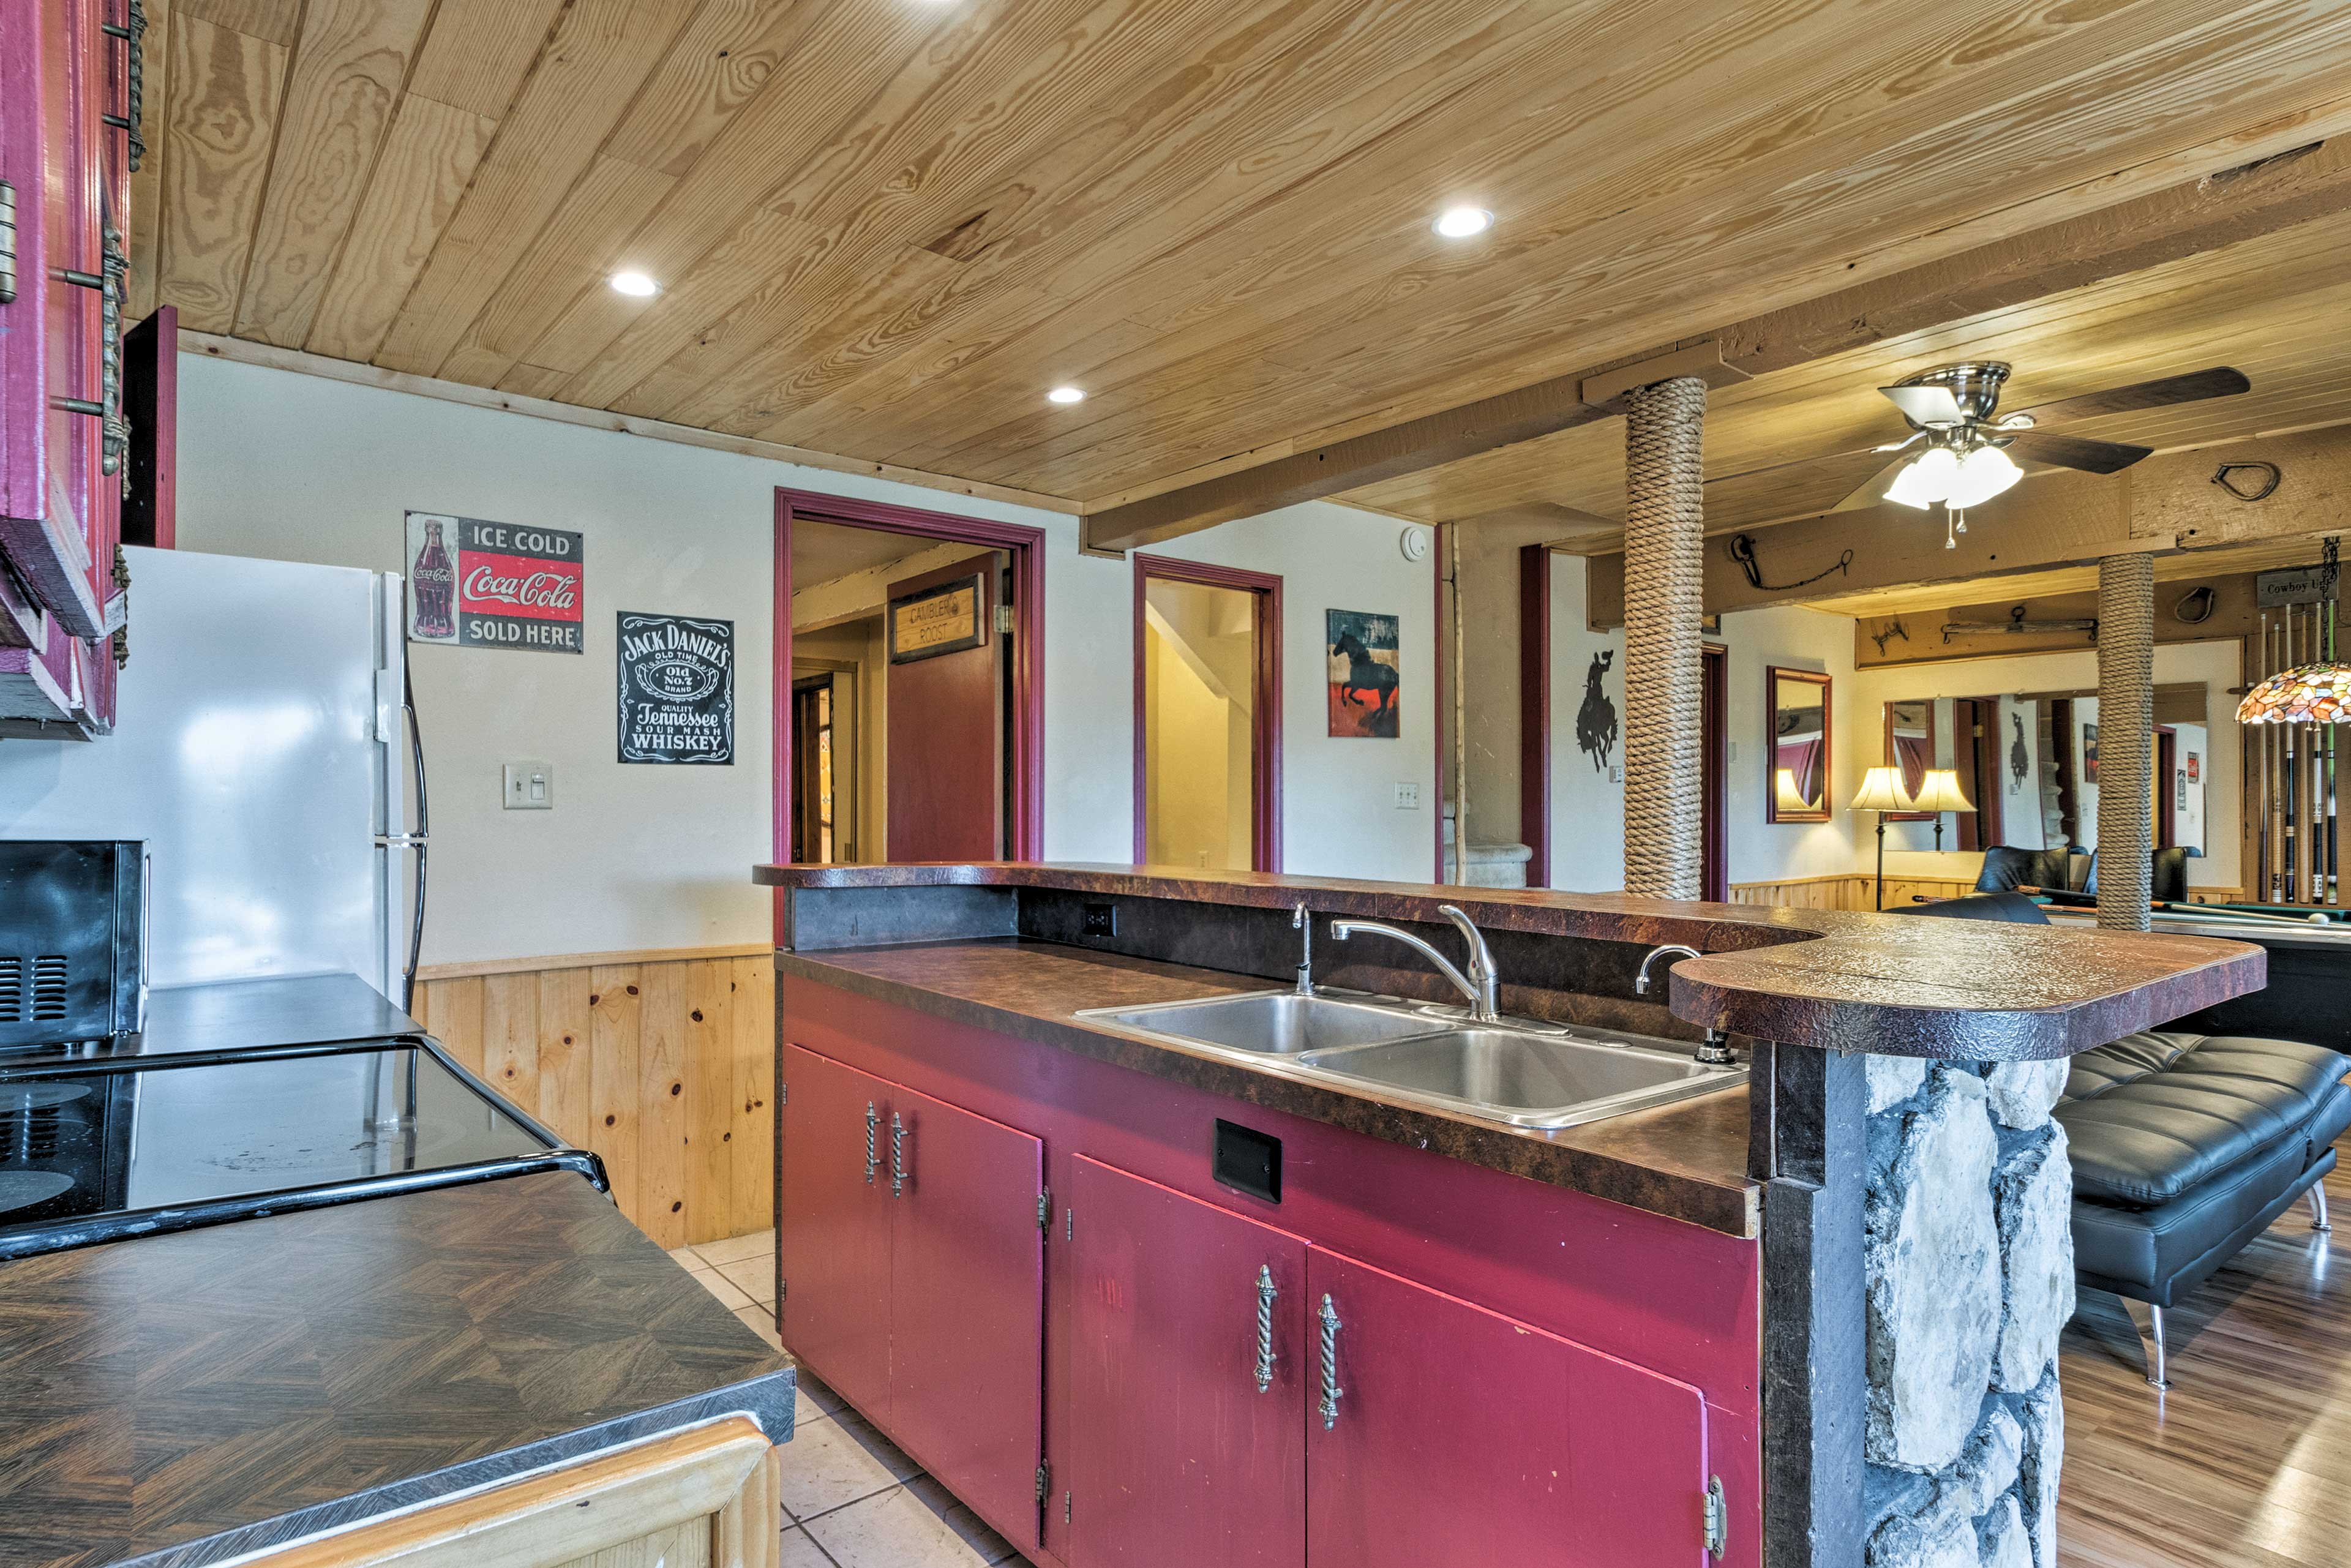 Whip up a quick snack in this convenient kitchen.